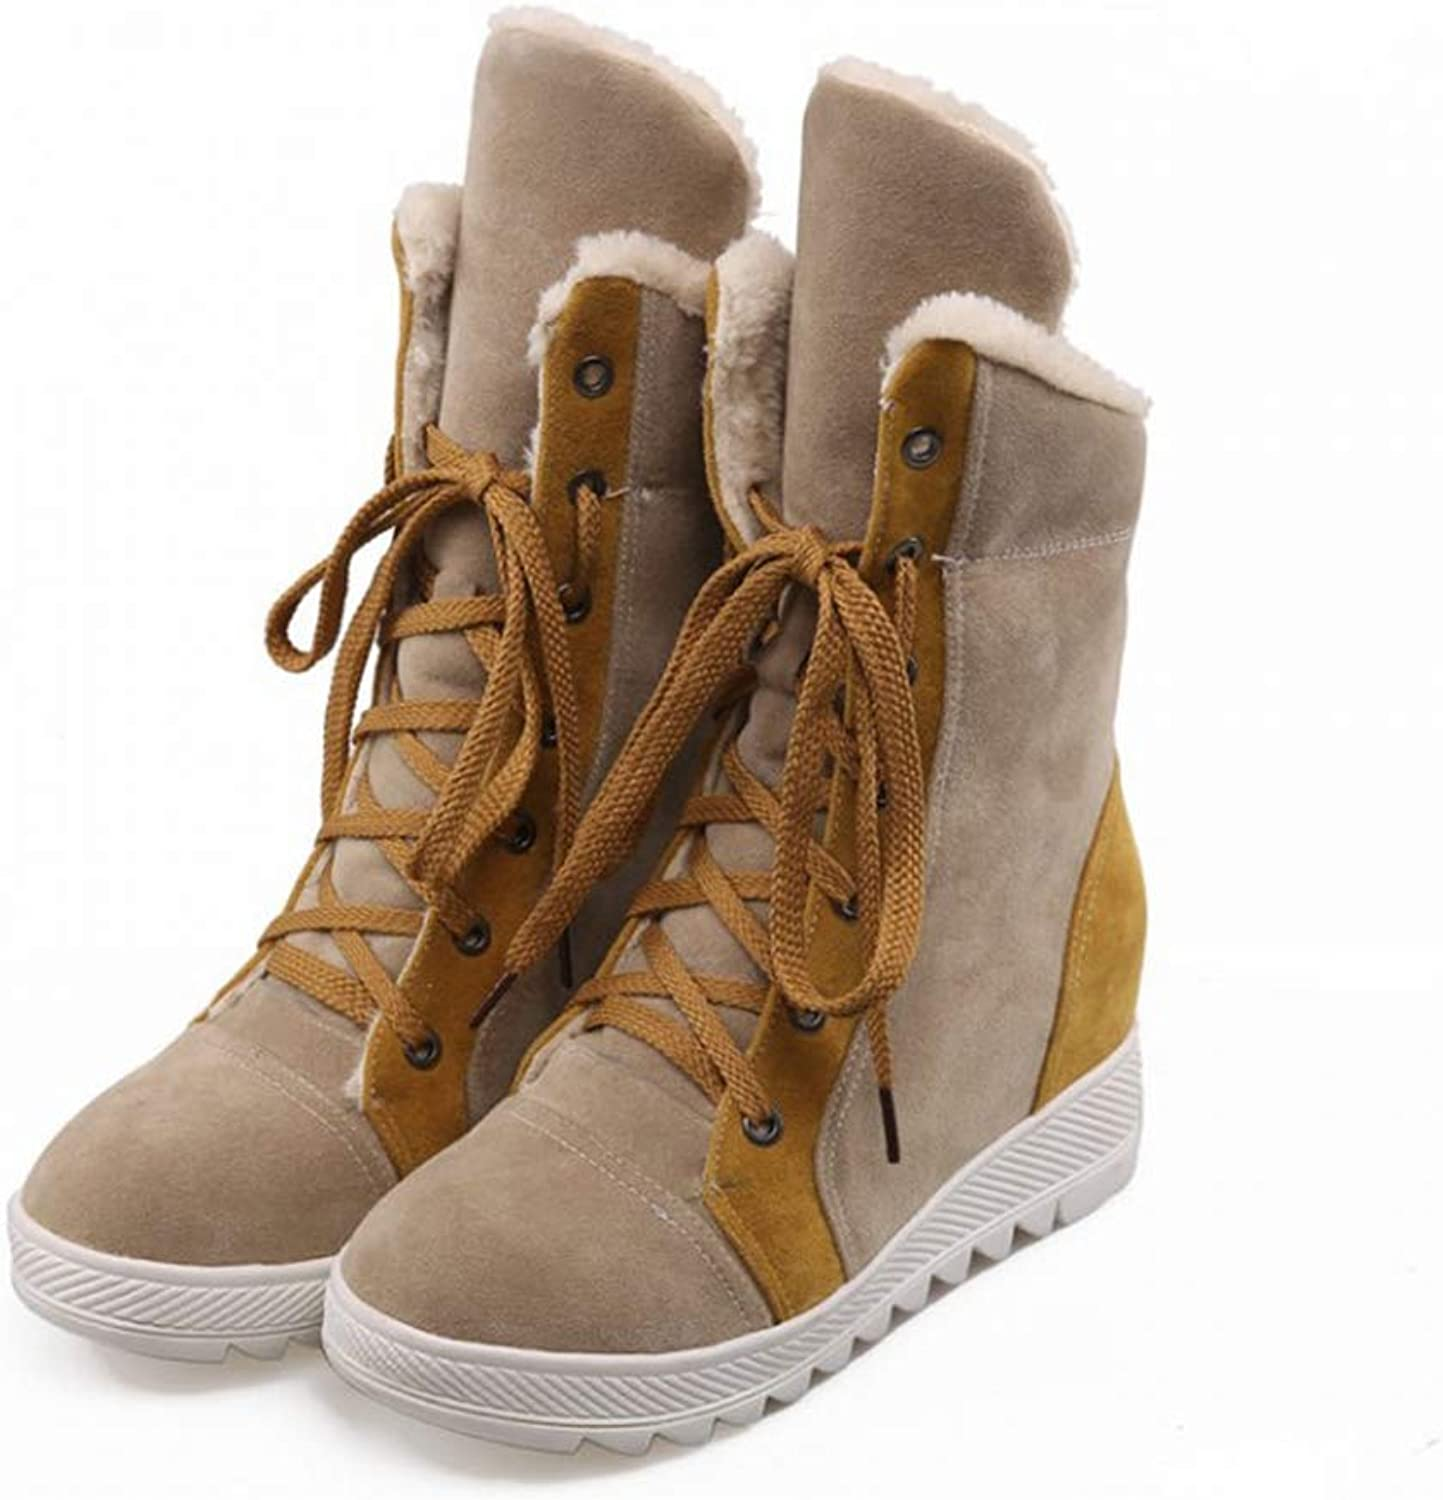 JOYBI Women Winter Round Toe Snow Boots Fur-Lined Warm Casual Height Increasing Folding Lace-up Ankle Boot